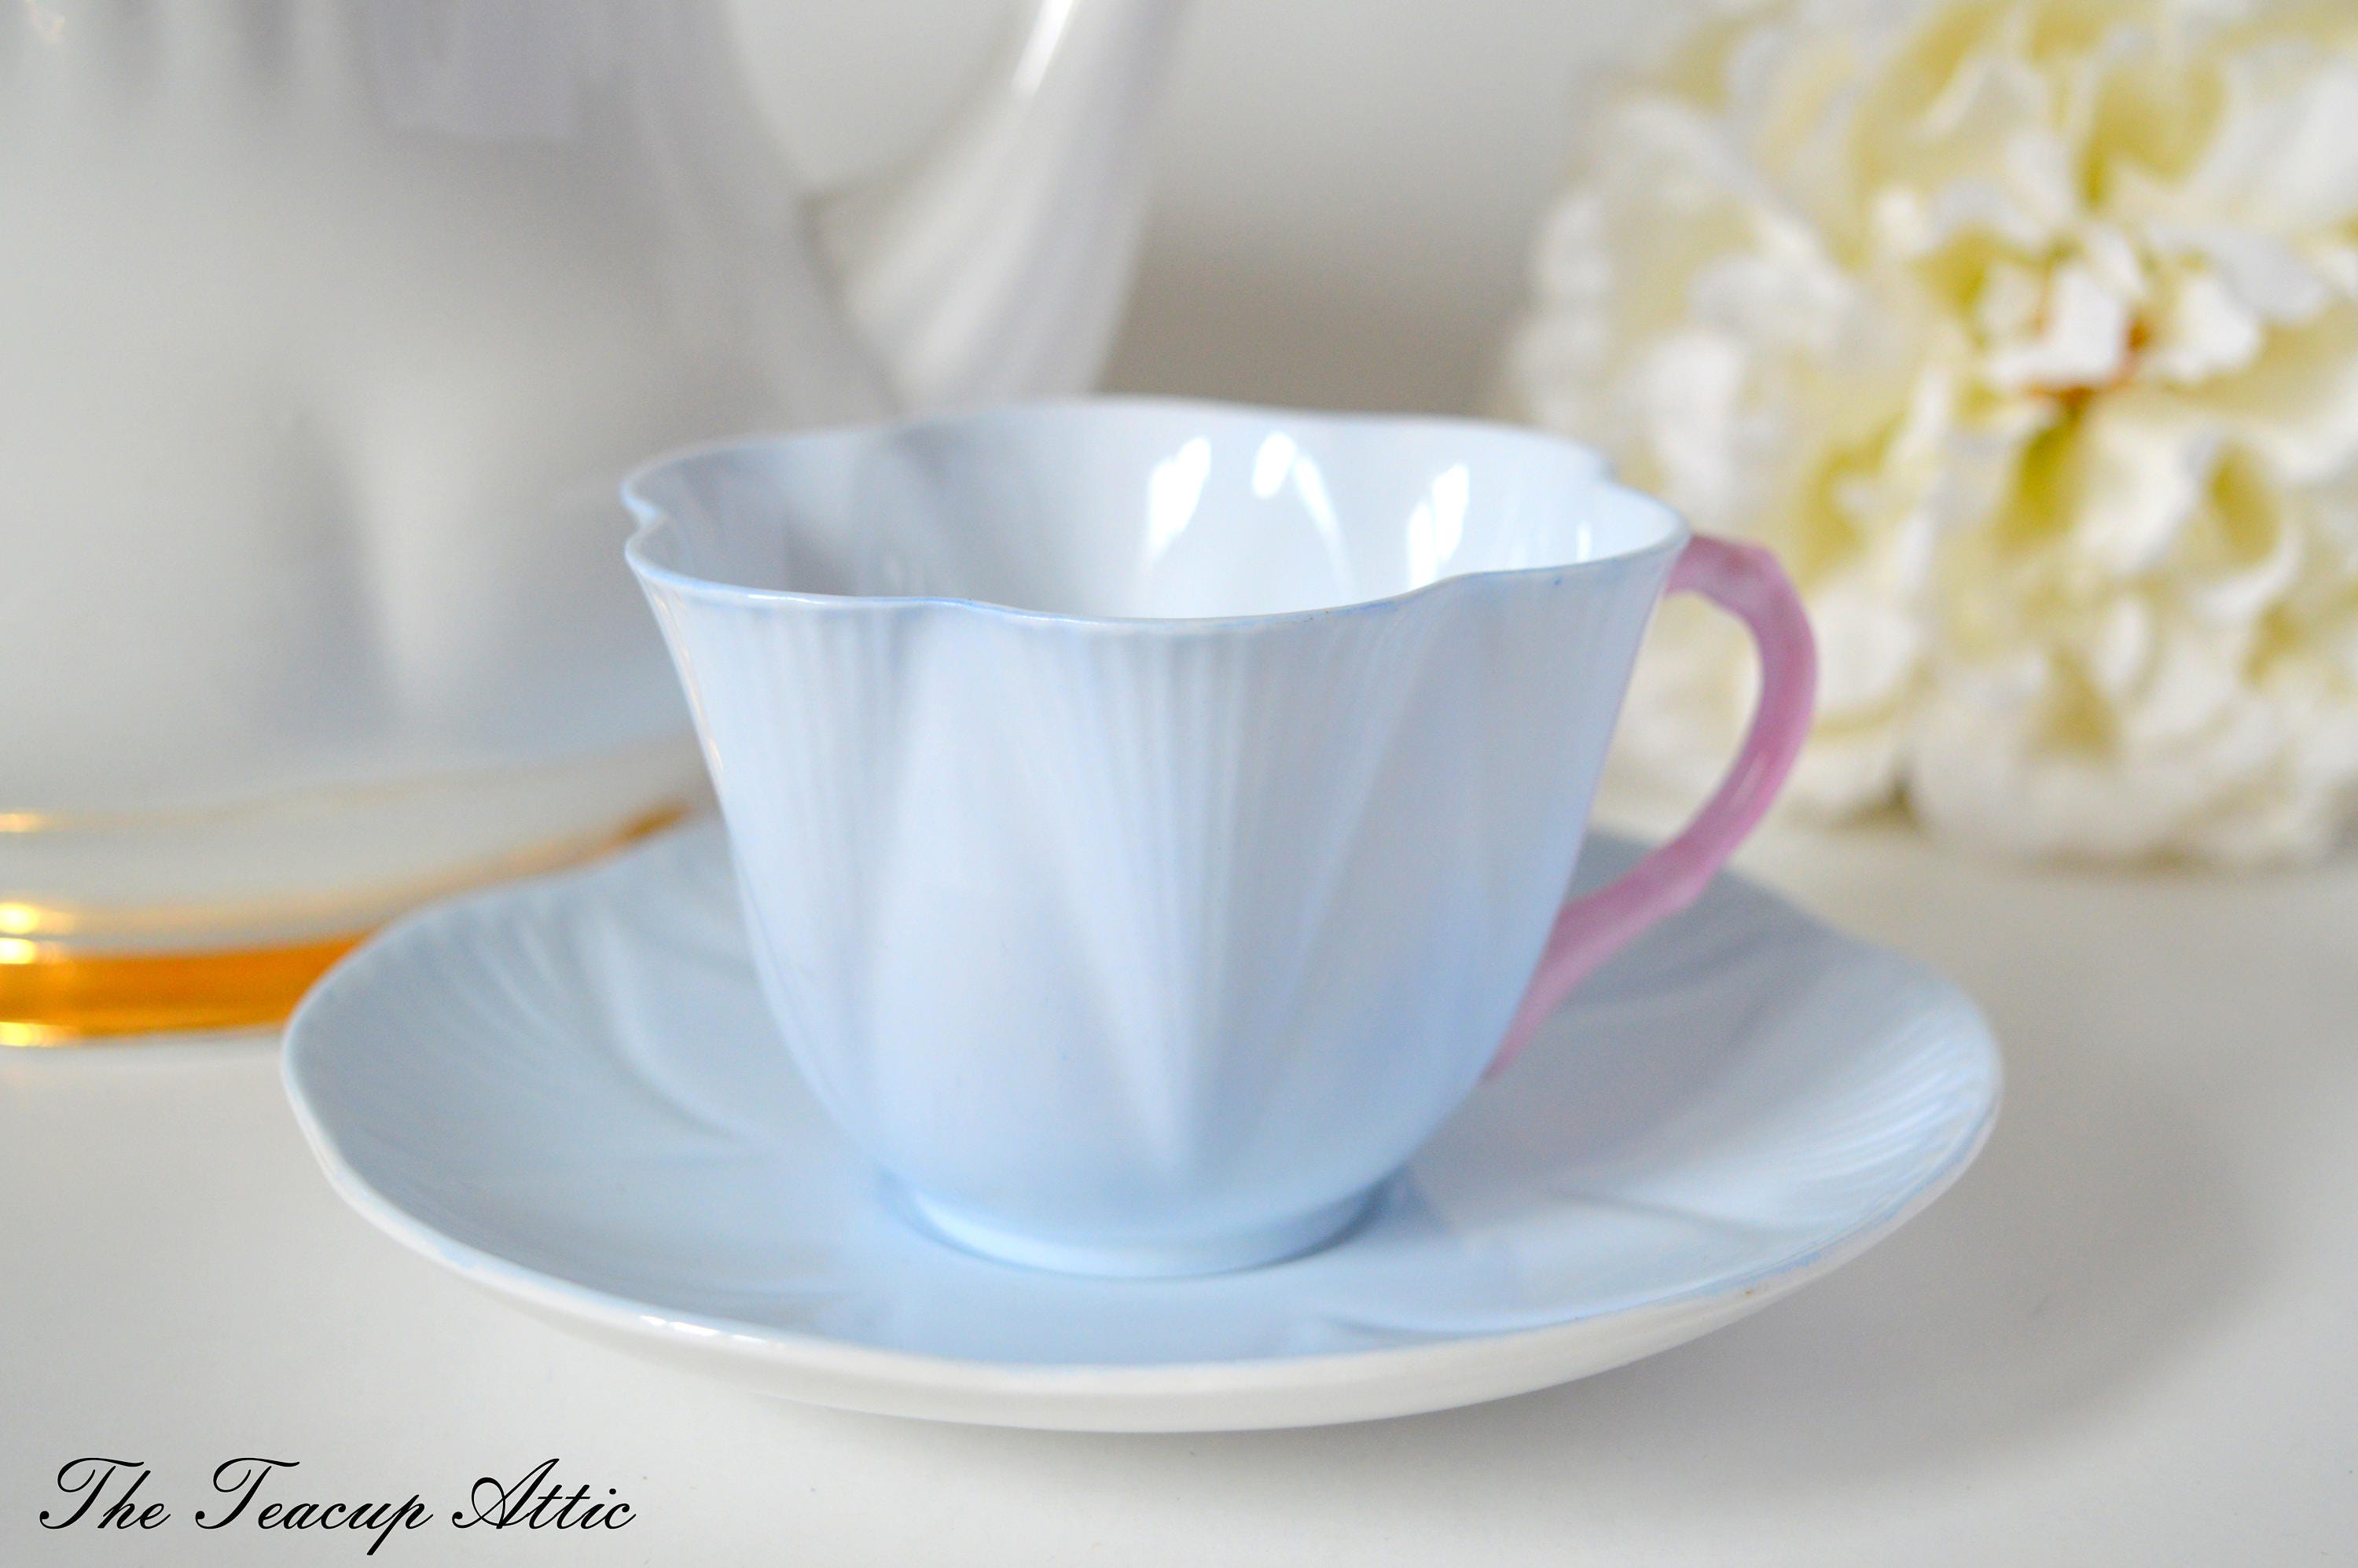 Shelley Pale Blue Teacup And Saucer Set With Pink Handle, English Bone China Tea Cup, Wedding Gift, Fluted Teacup,  ca. 1945-1966